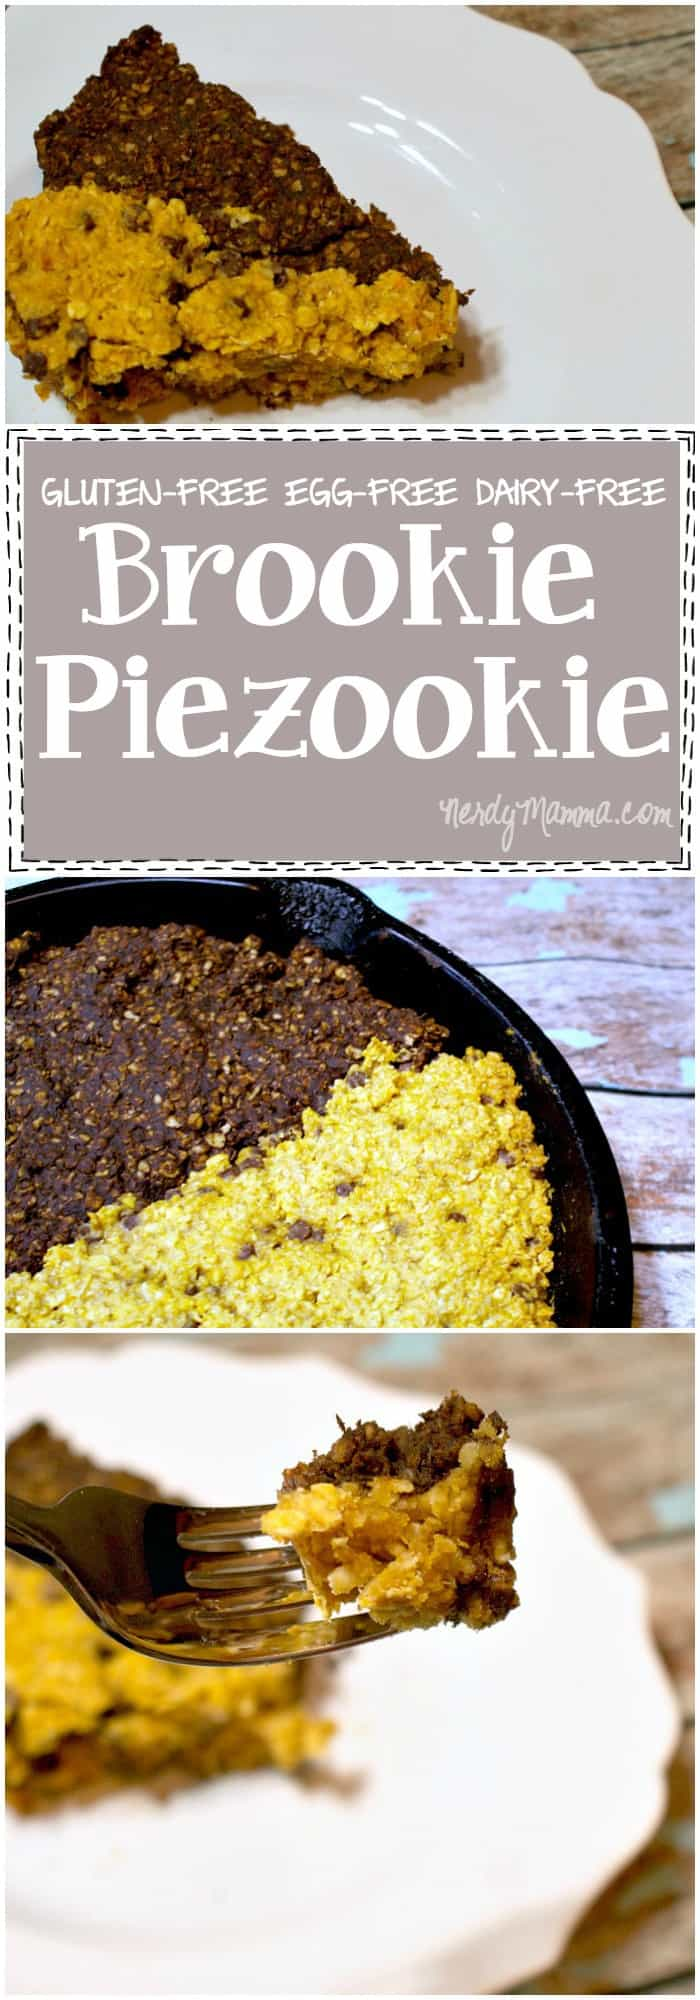 I'd like to bury my face in this awesome brookie piezookie. It's gluten-free, dairy-free AND egg-free. Brownies and Cookies got married and had this awesome baby...and I want to eat it!